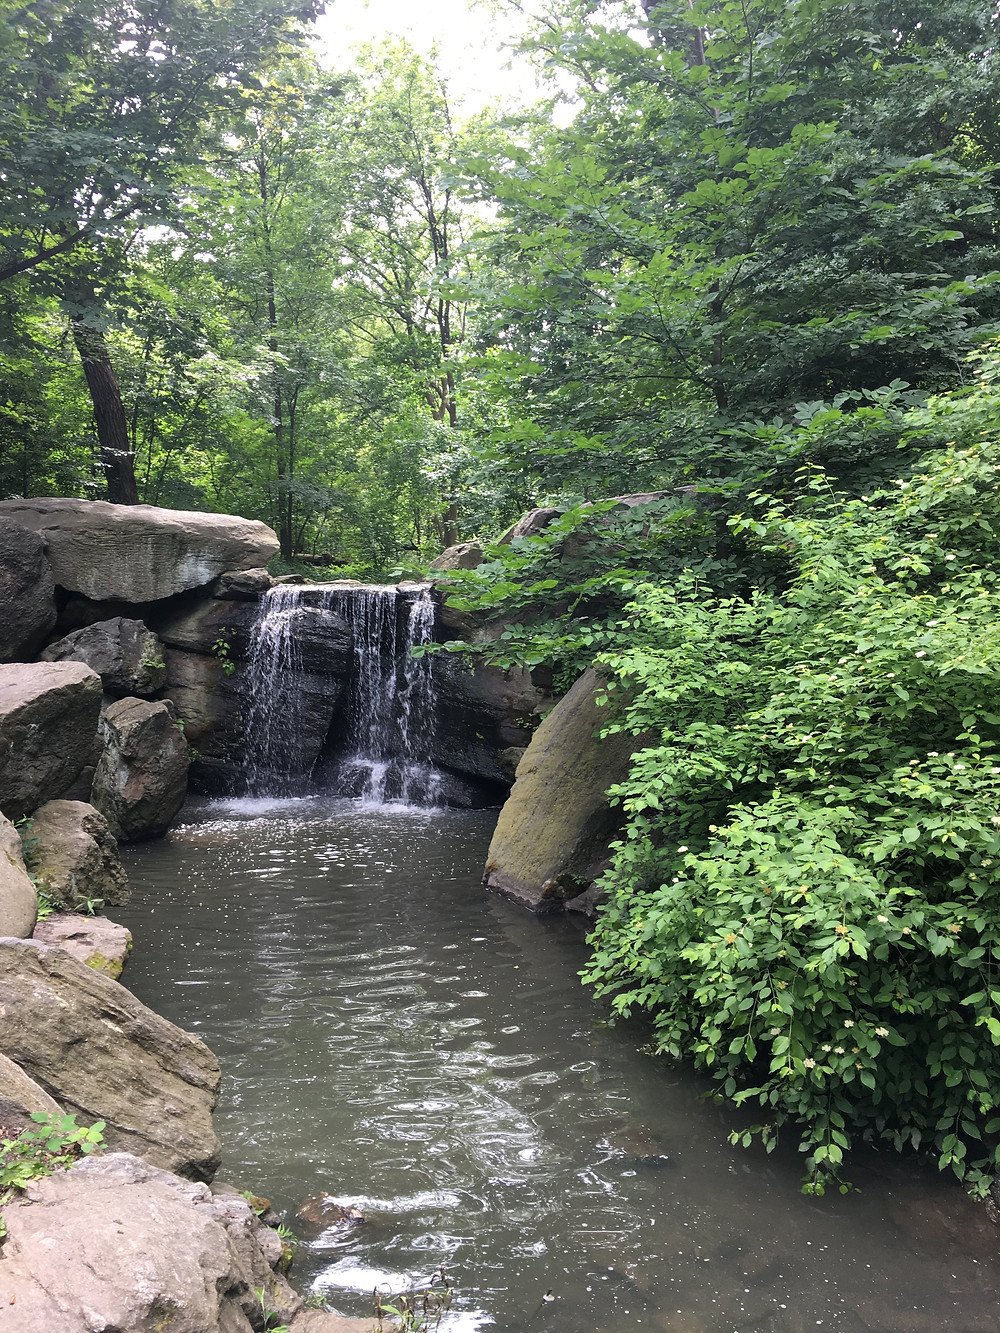 The cascades in Central Park's Ravine